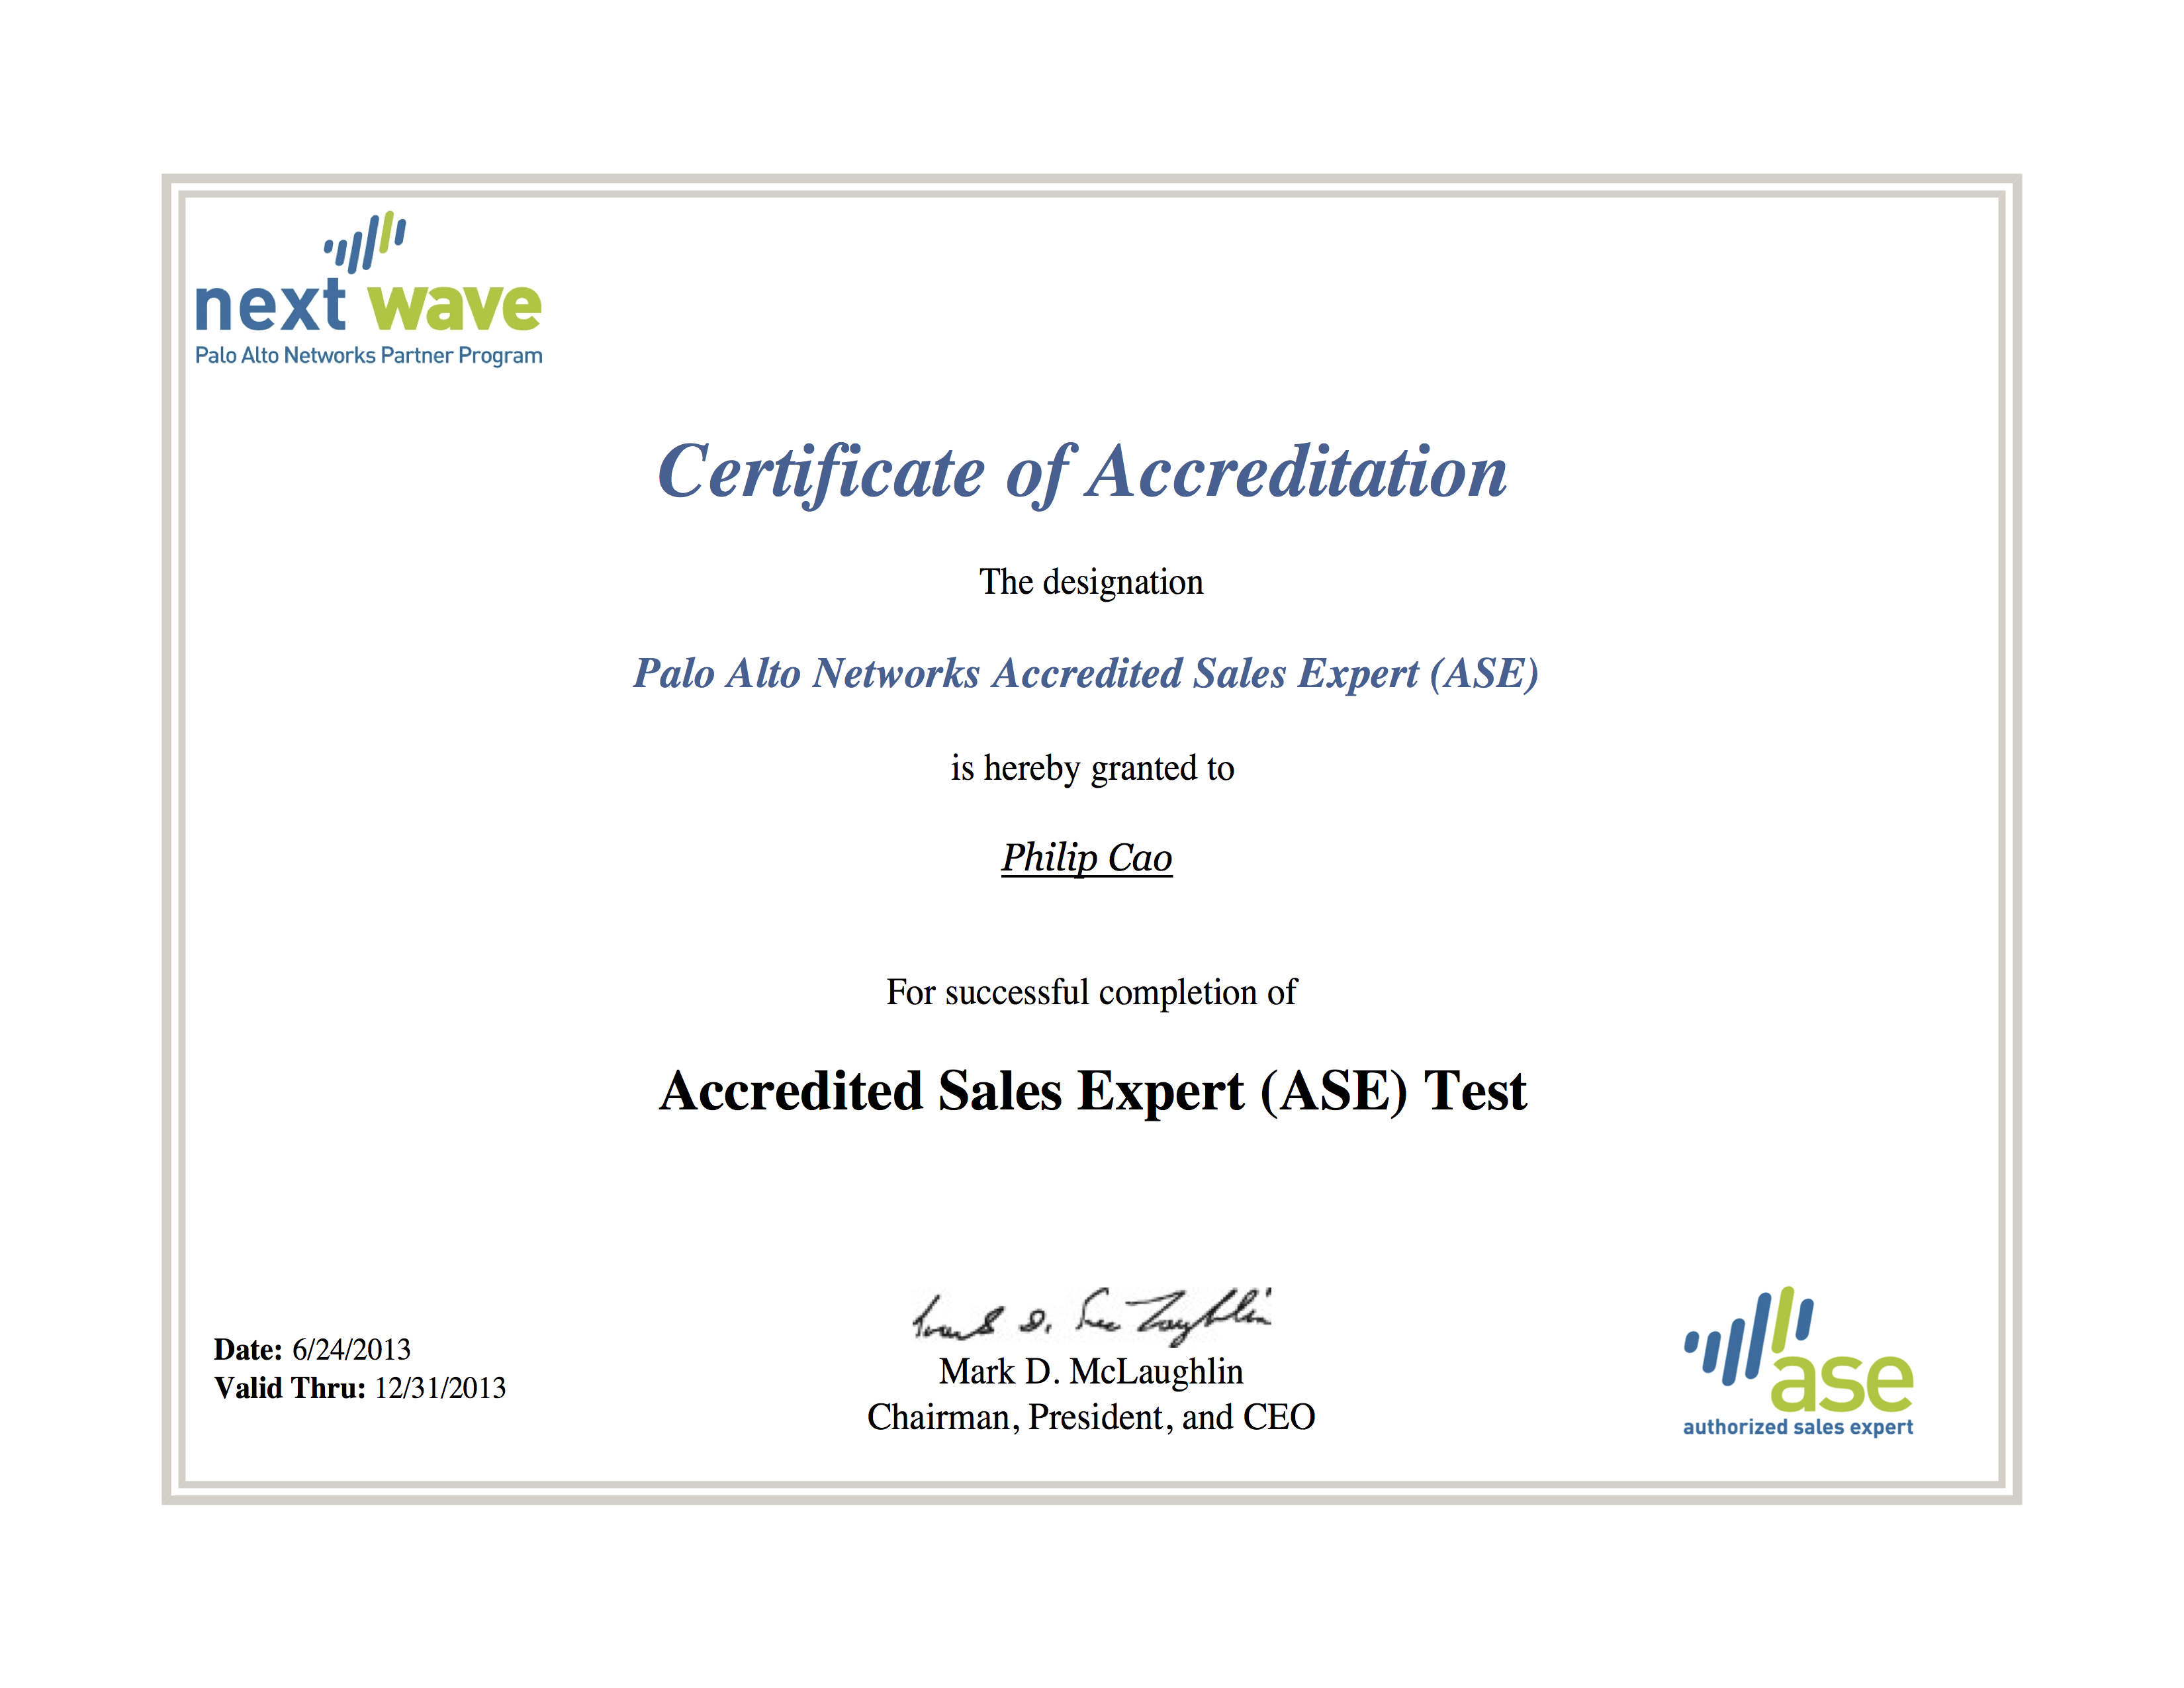 Beautiful collection of ase certification meaning business cards philiphungcao from ase certification meaning image source philip453sing xflitez Image collections